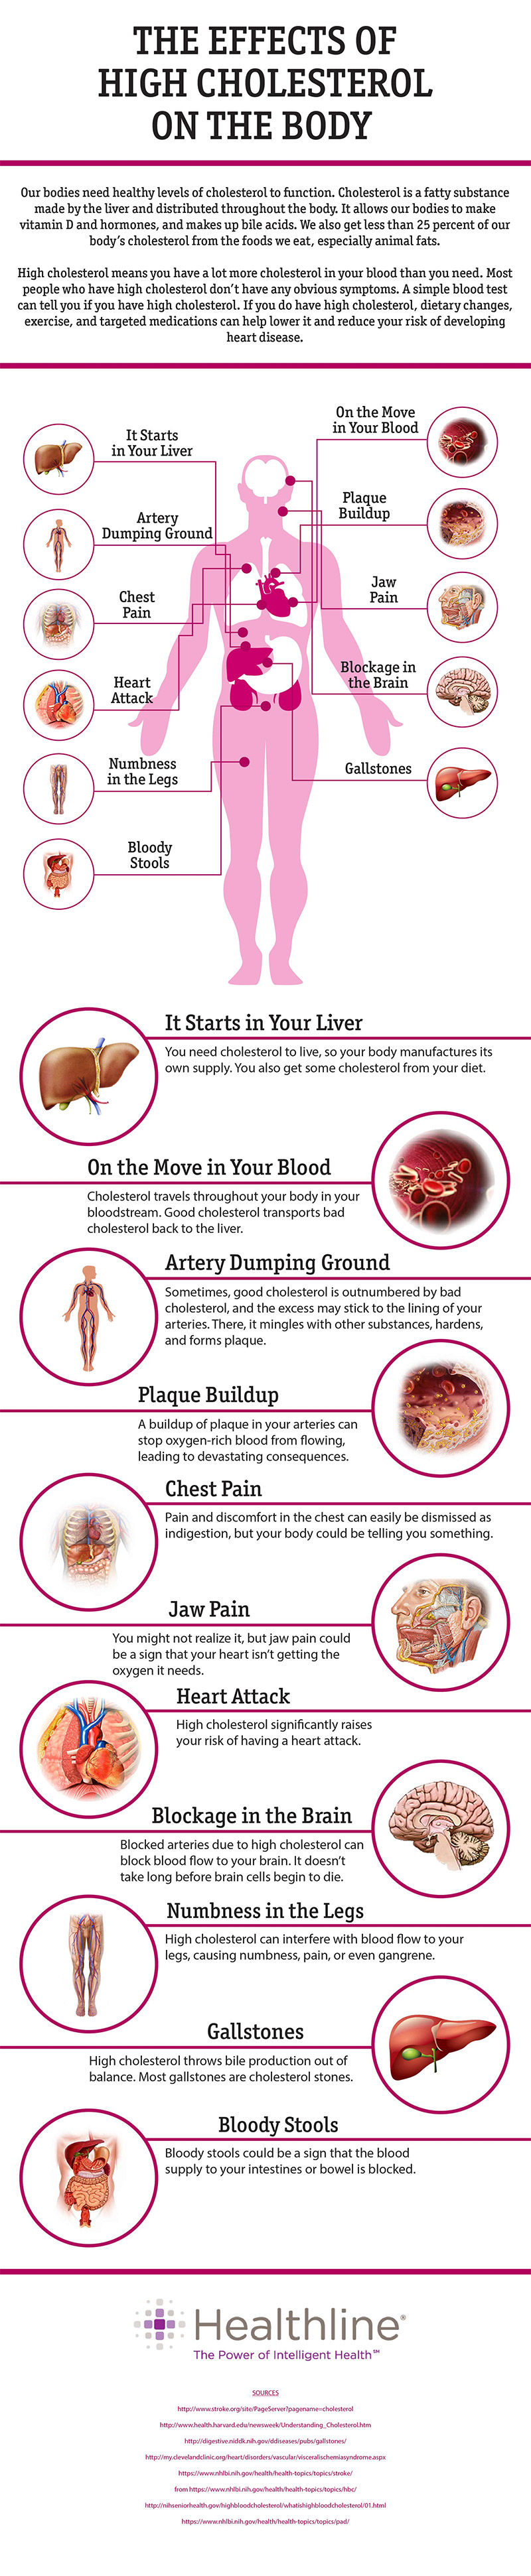 effects-of-high-cholesterol